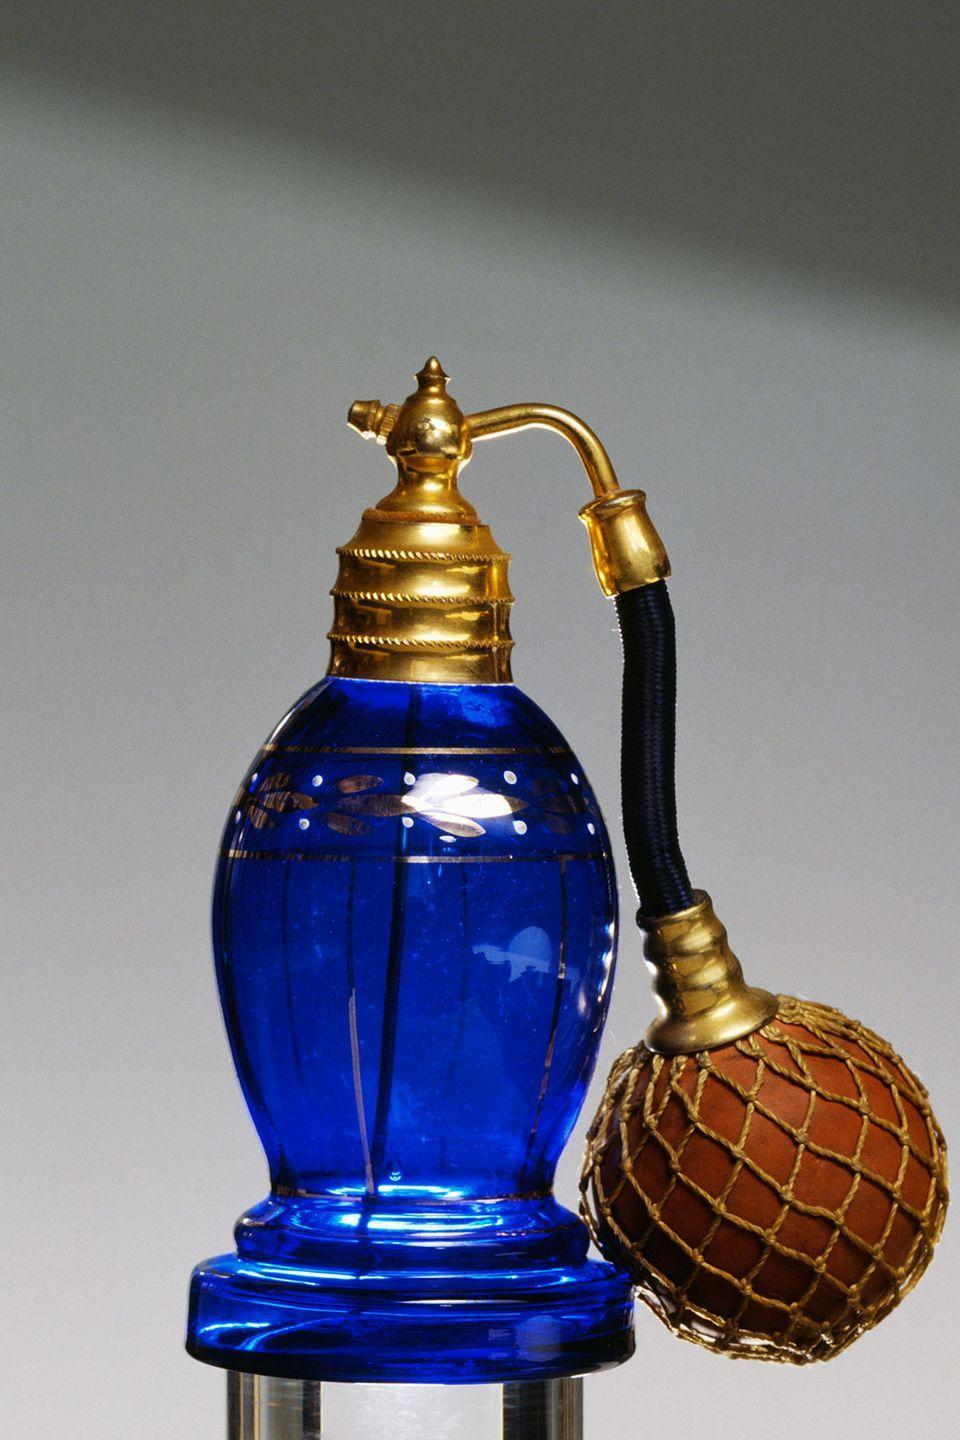 <p>They just don't make 'em like they used to. Glassblowers throughout the world turned perfume bottles into an art form in the 19th century. If you have anything in pristine condition from companies like New England Glass Company or the Boston & Sandwich Glass Company, keep it somewhere safe until you get it appraised. </p><p><strong>What it's worth: </strong>Up to $1,000<br></p>